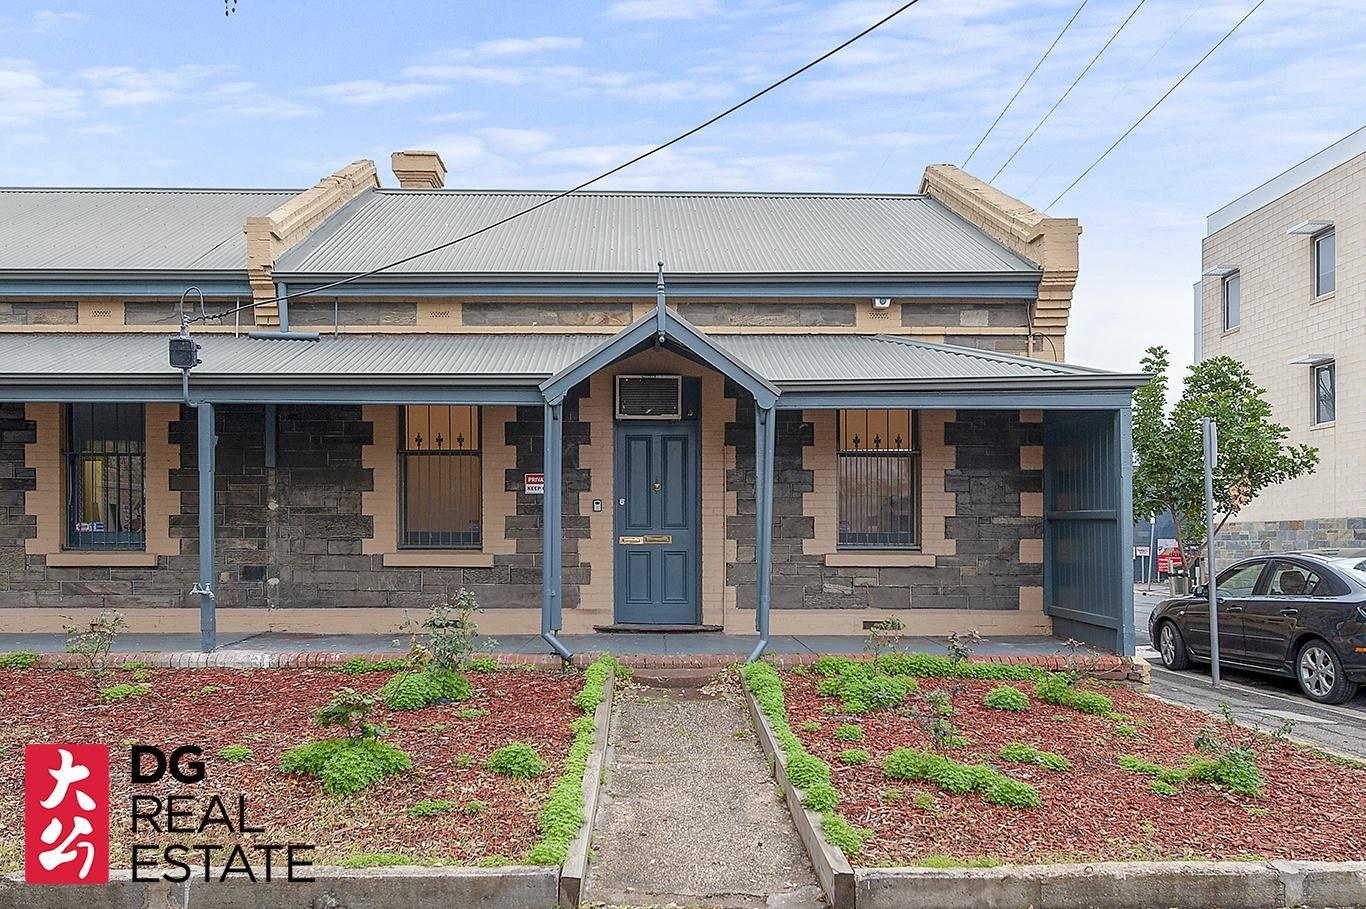 3 bedrooms House in 256 Franklin Street ADELAIDE SA, 5000